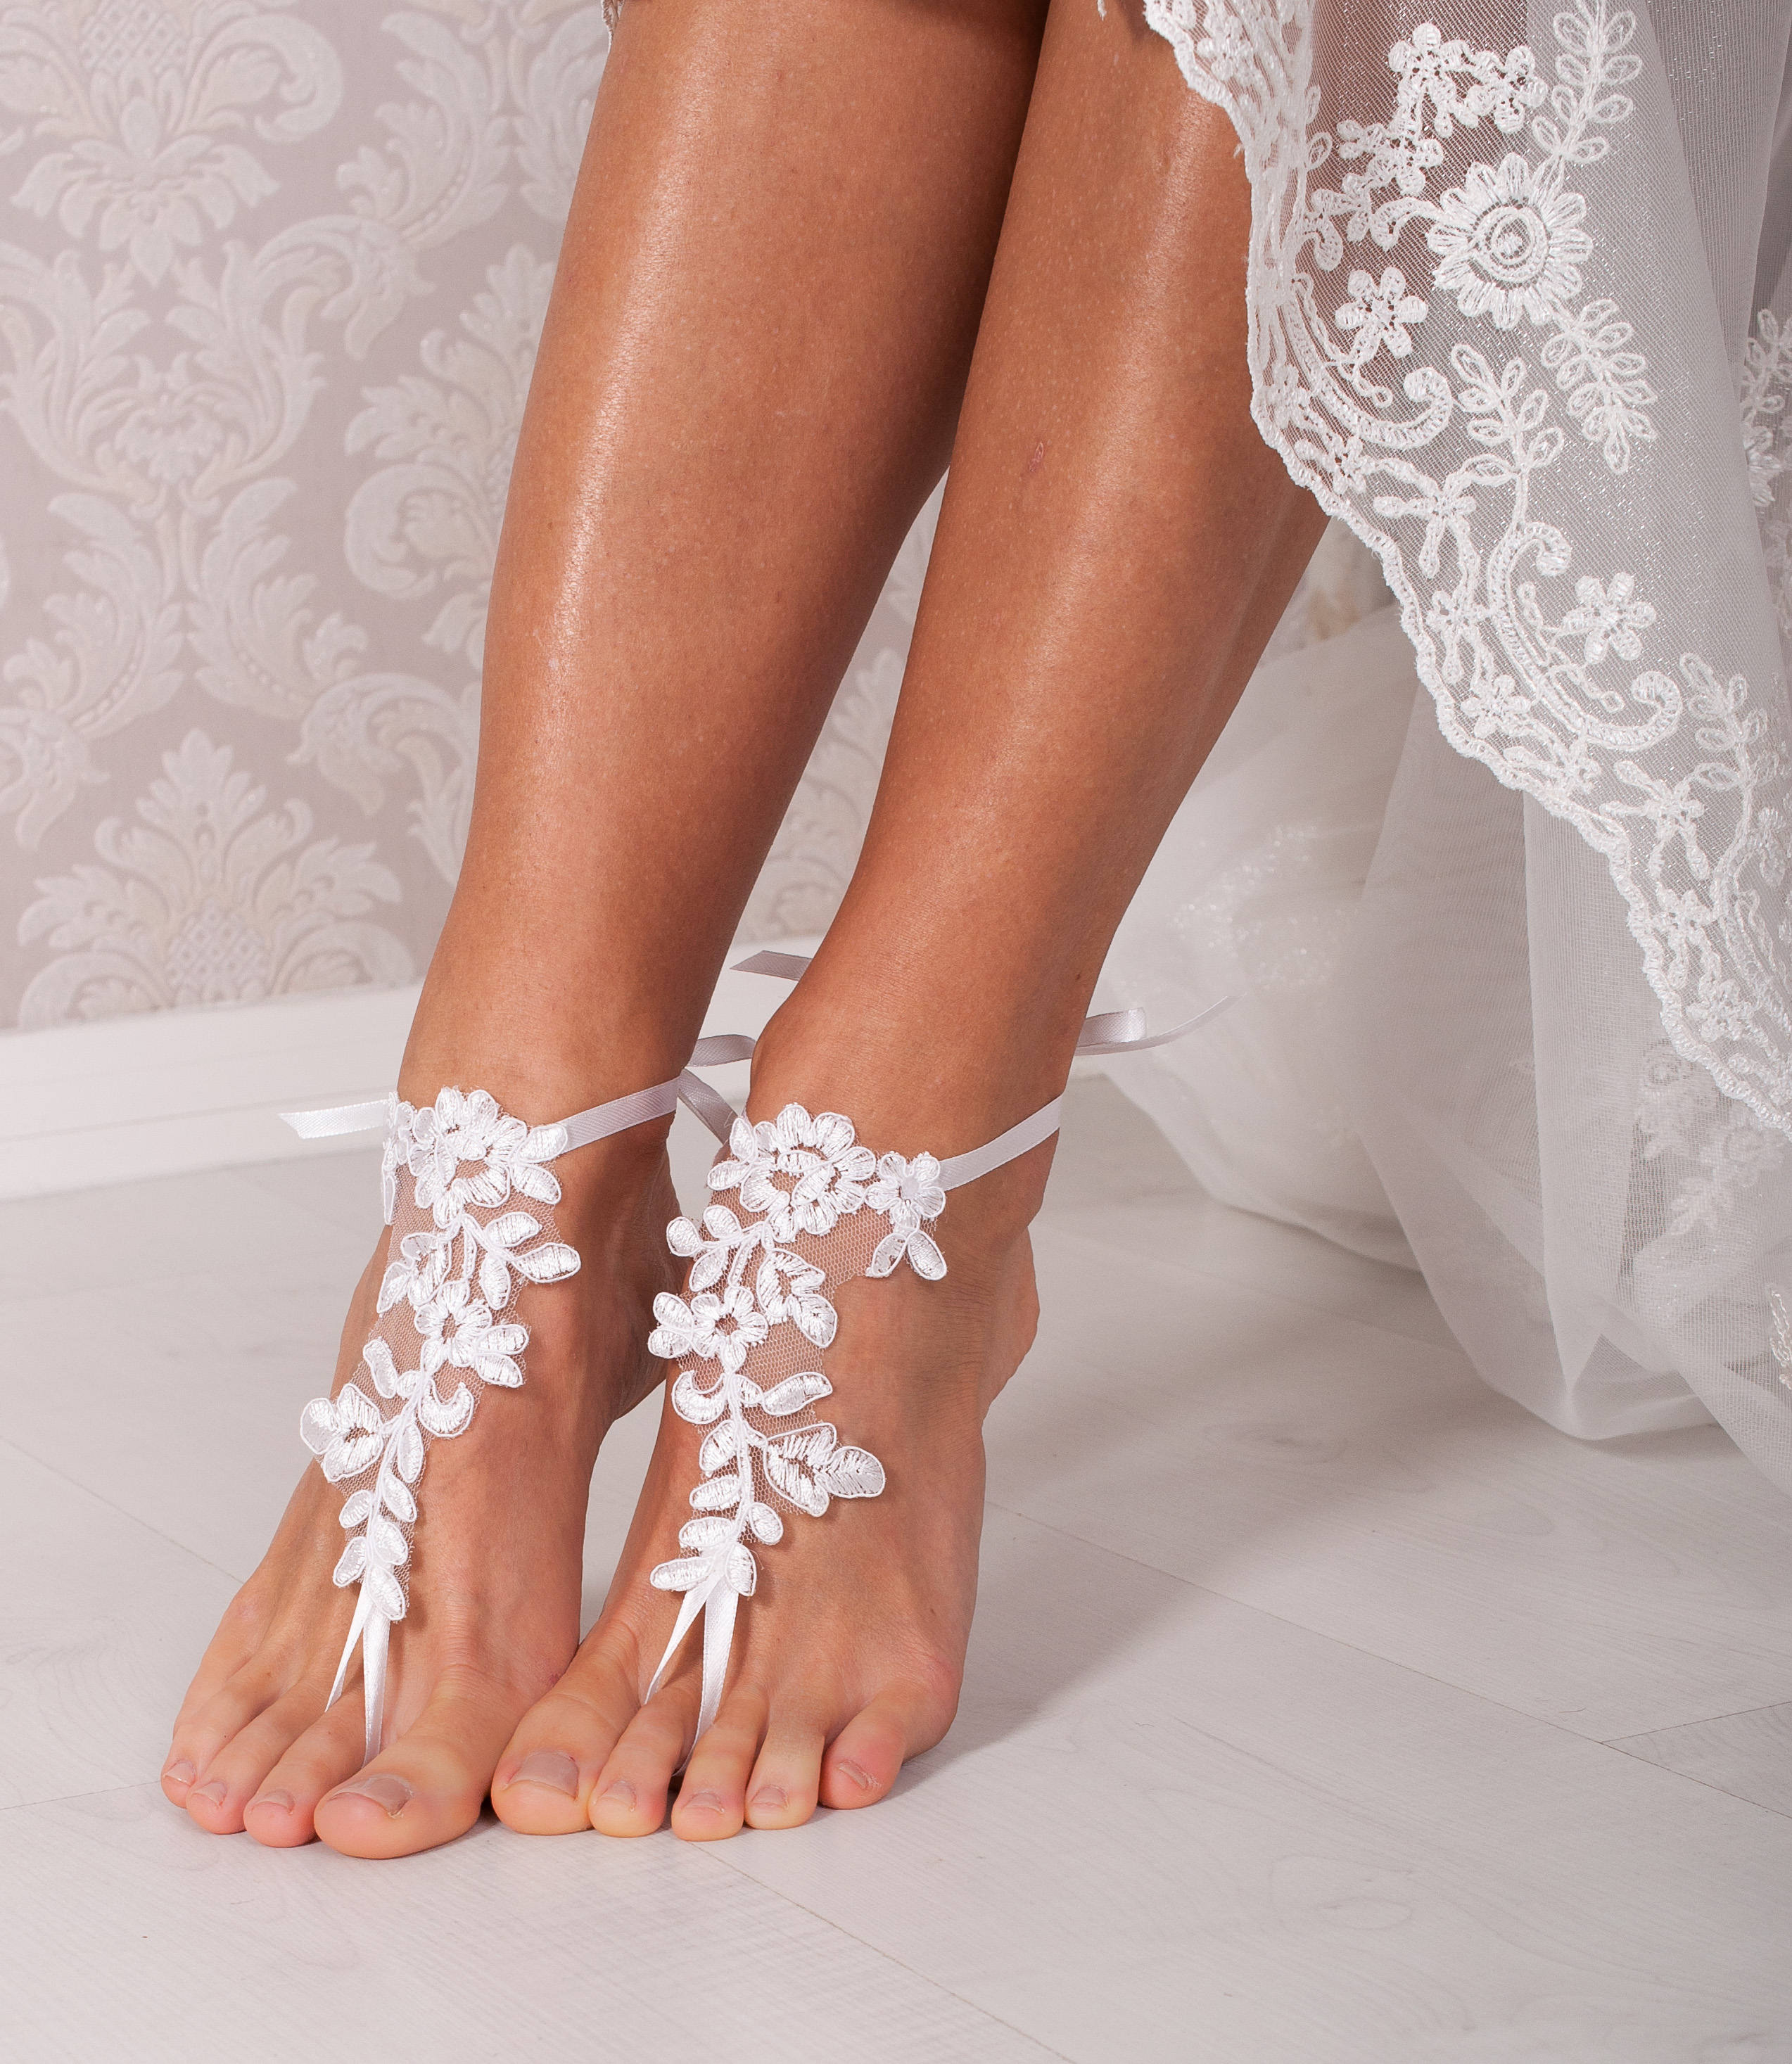 be4d971eca493 White lace barefoot sandals